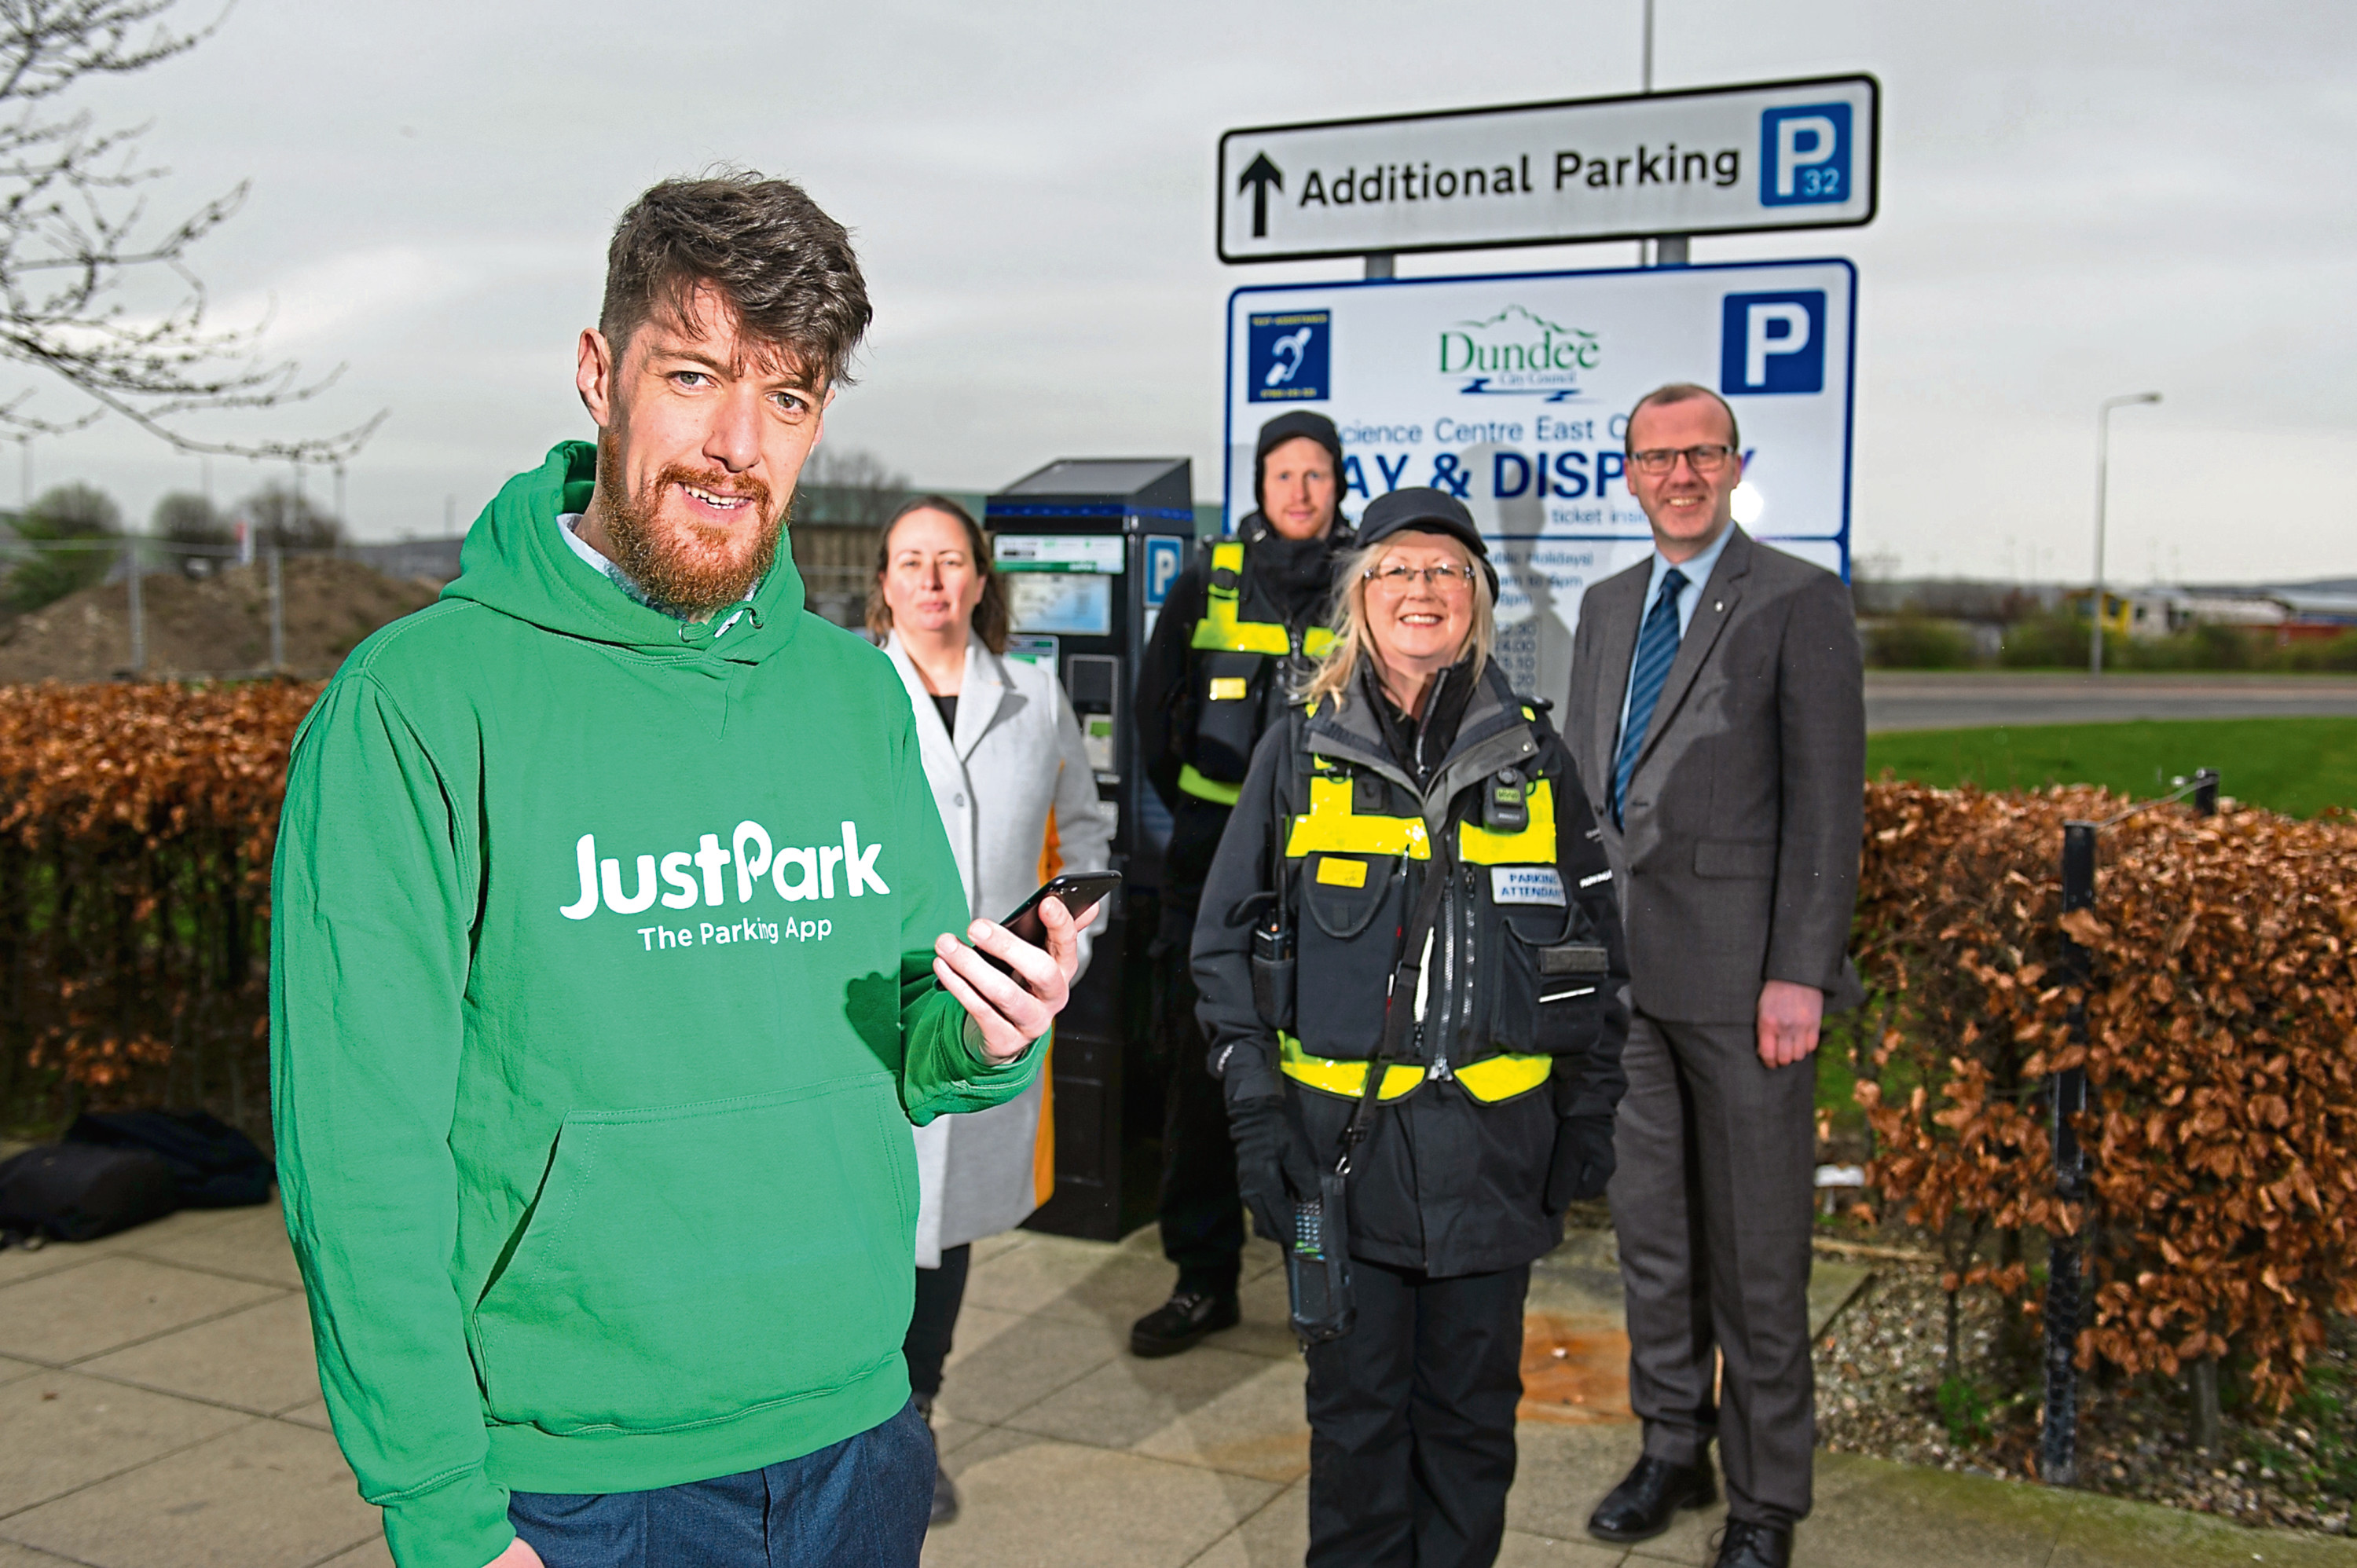 Using the JustPark app, you will now be able to pay for parking in any on-street bay or Dundee City Council pay-and-display car park.